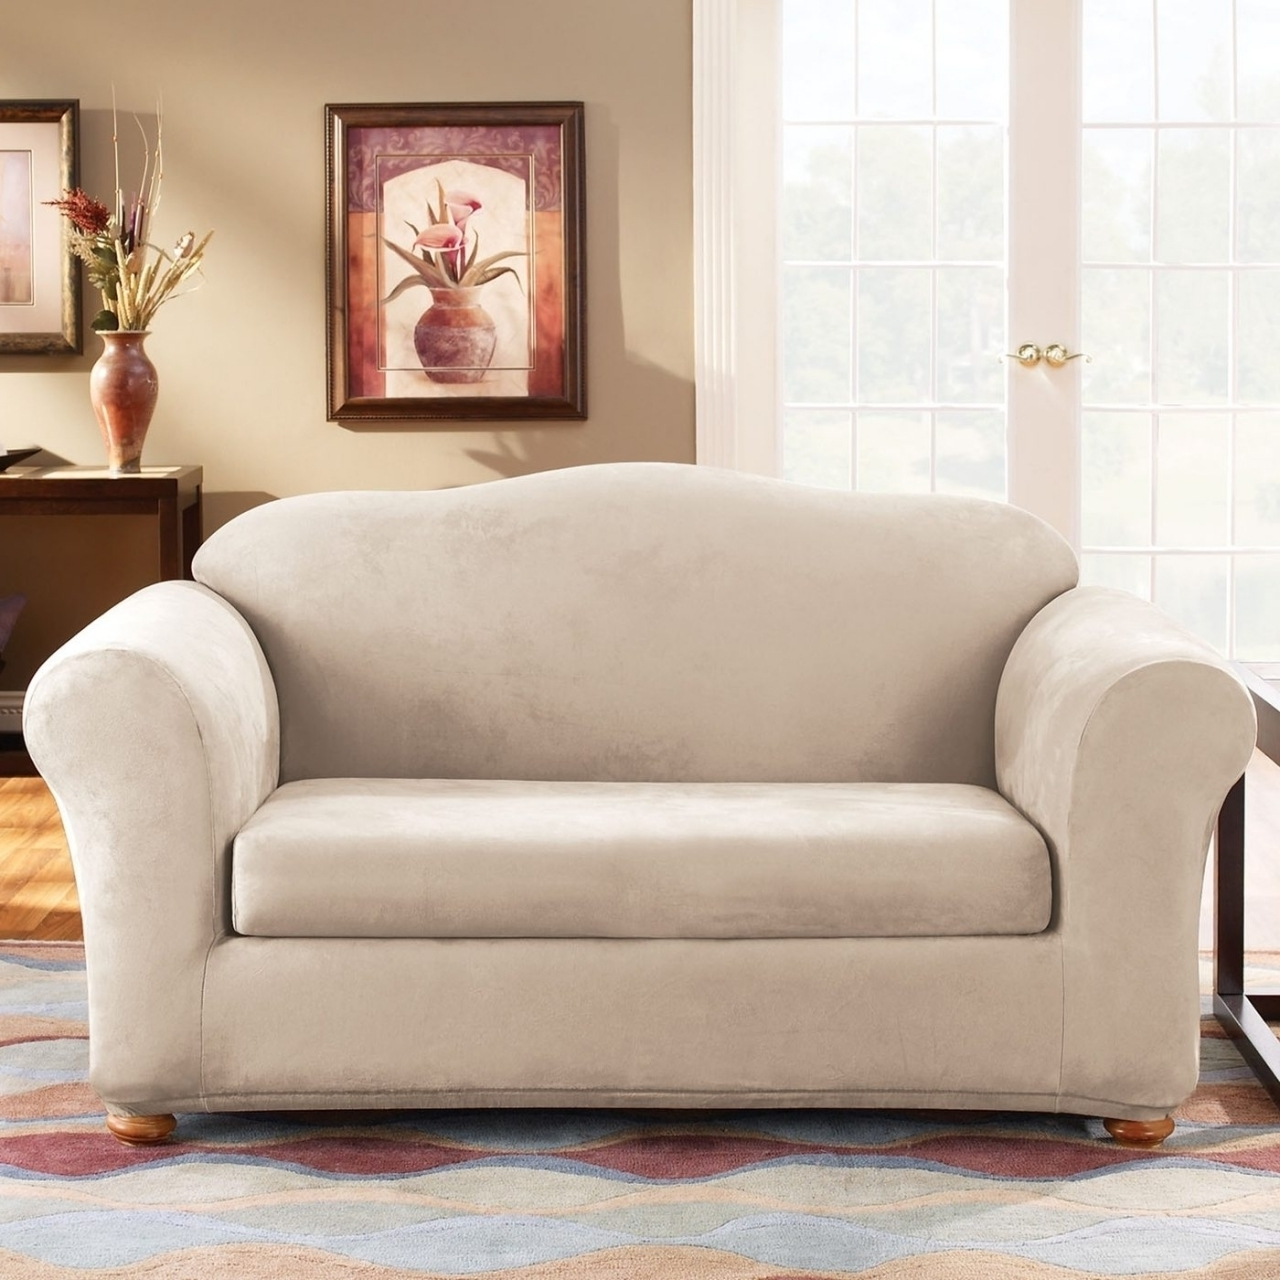 Latest Kmart Sectional Sofa – Hotelsbacau With Regard To Kmart Sectional Sofas (View 12 of 20)